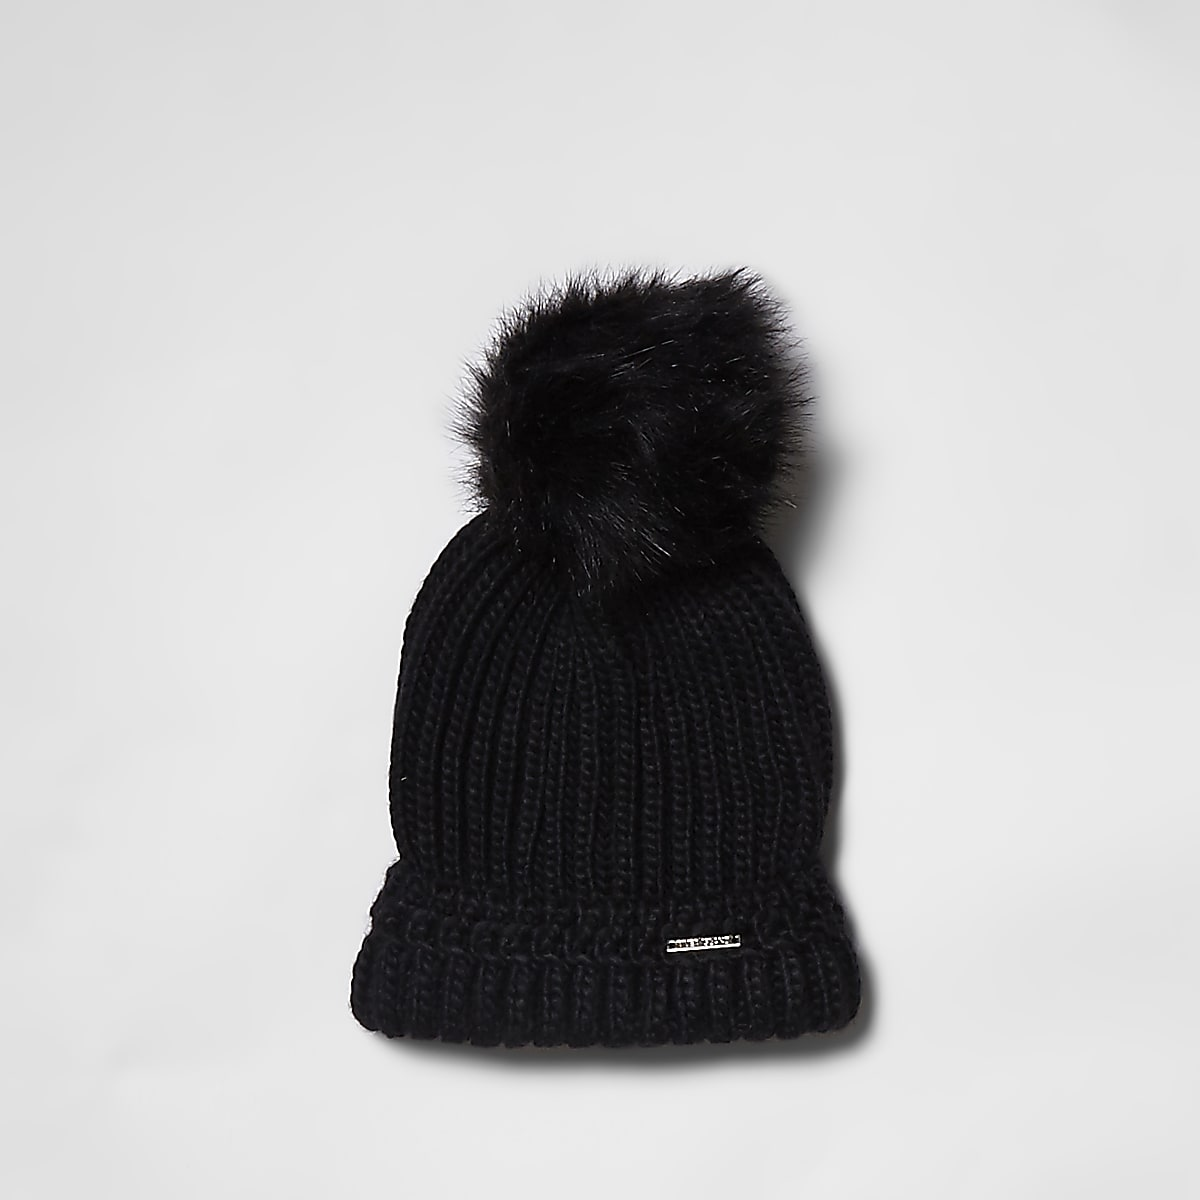 Black faux fur bobble beanie hat